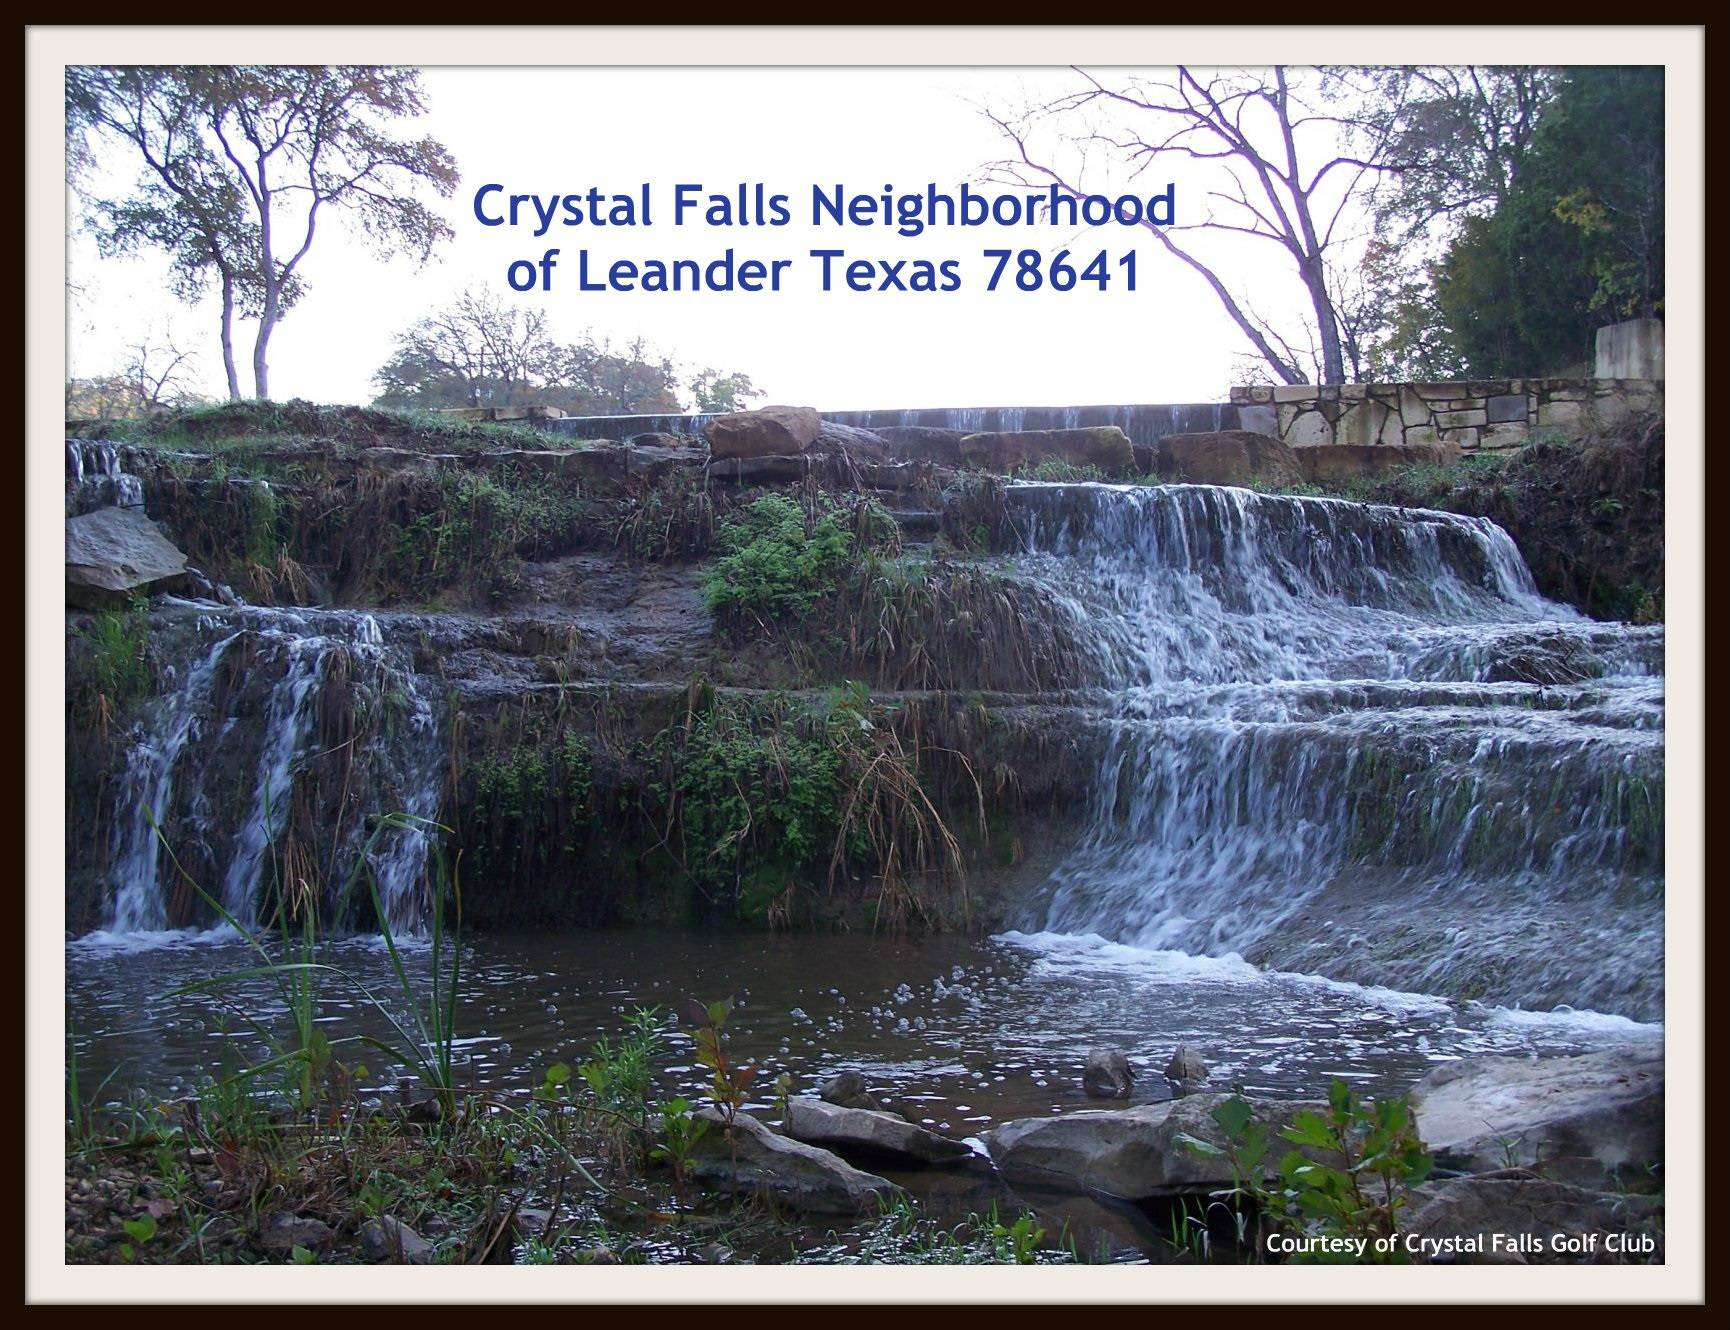 Crystal falls neighborhood in leander tx 78641 zip code Crystal falls